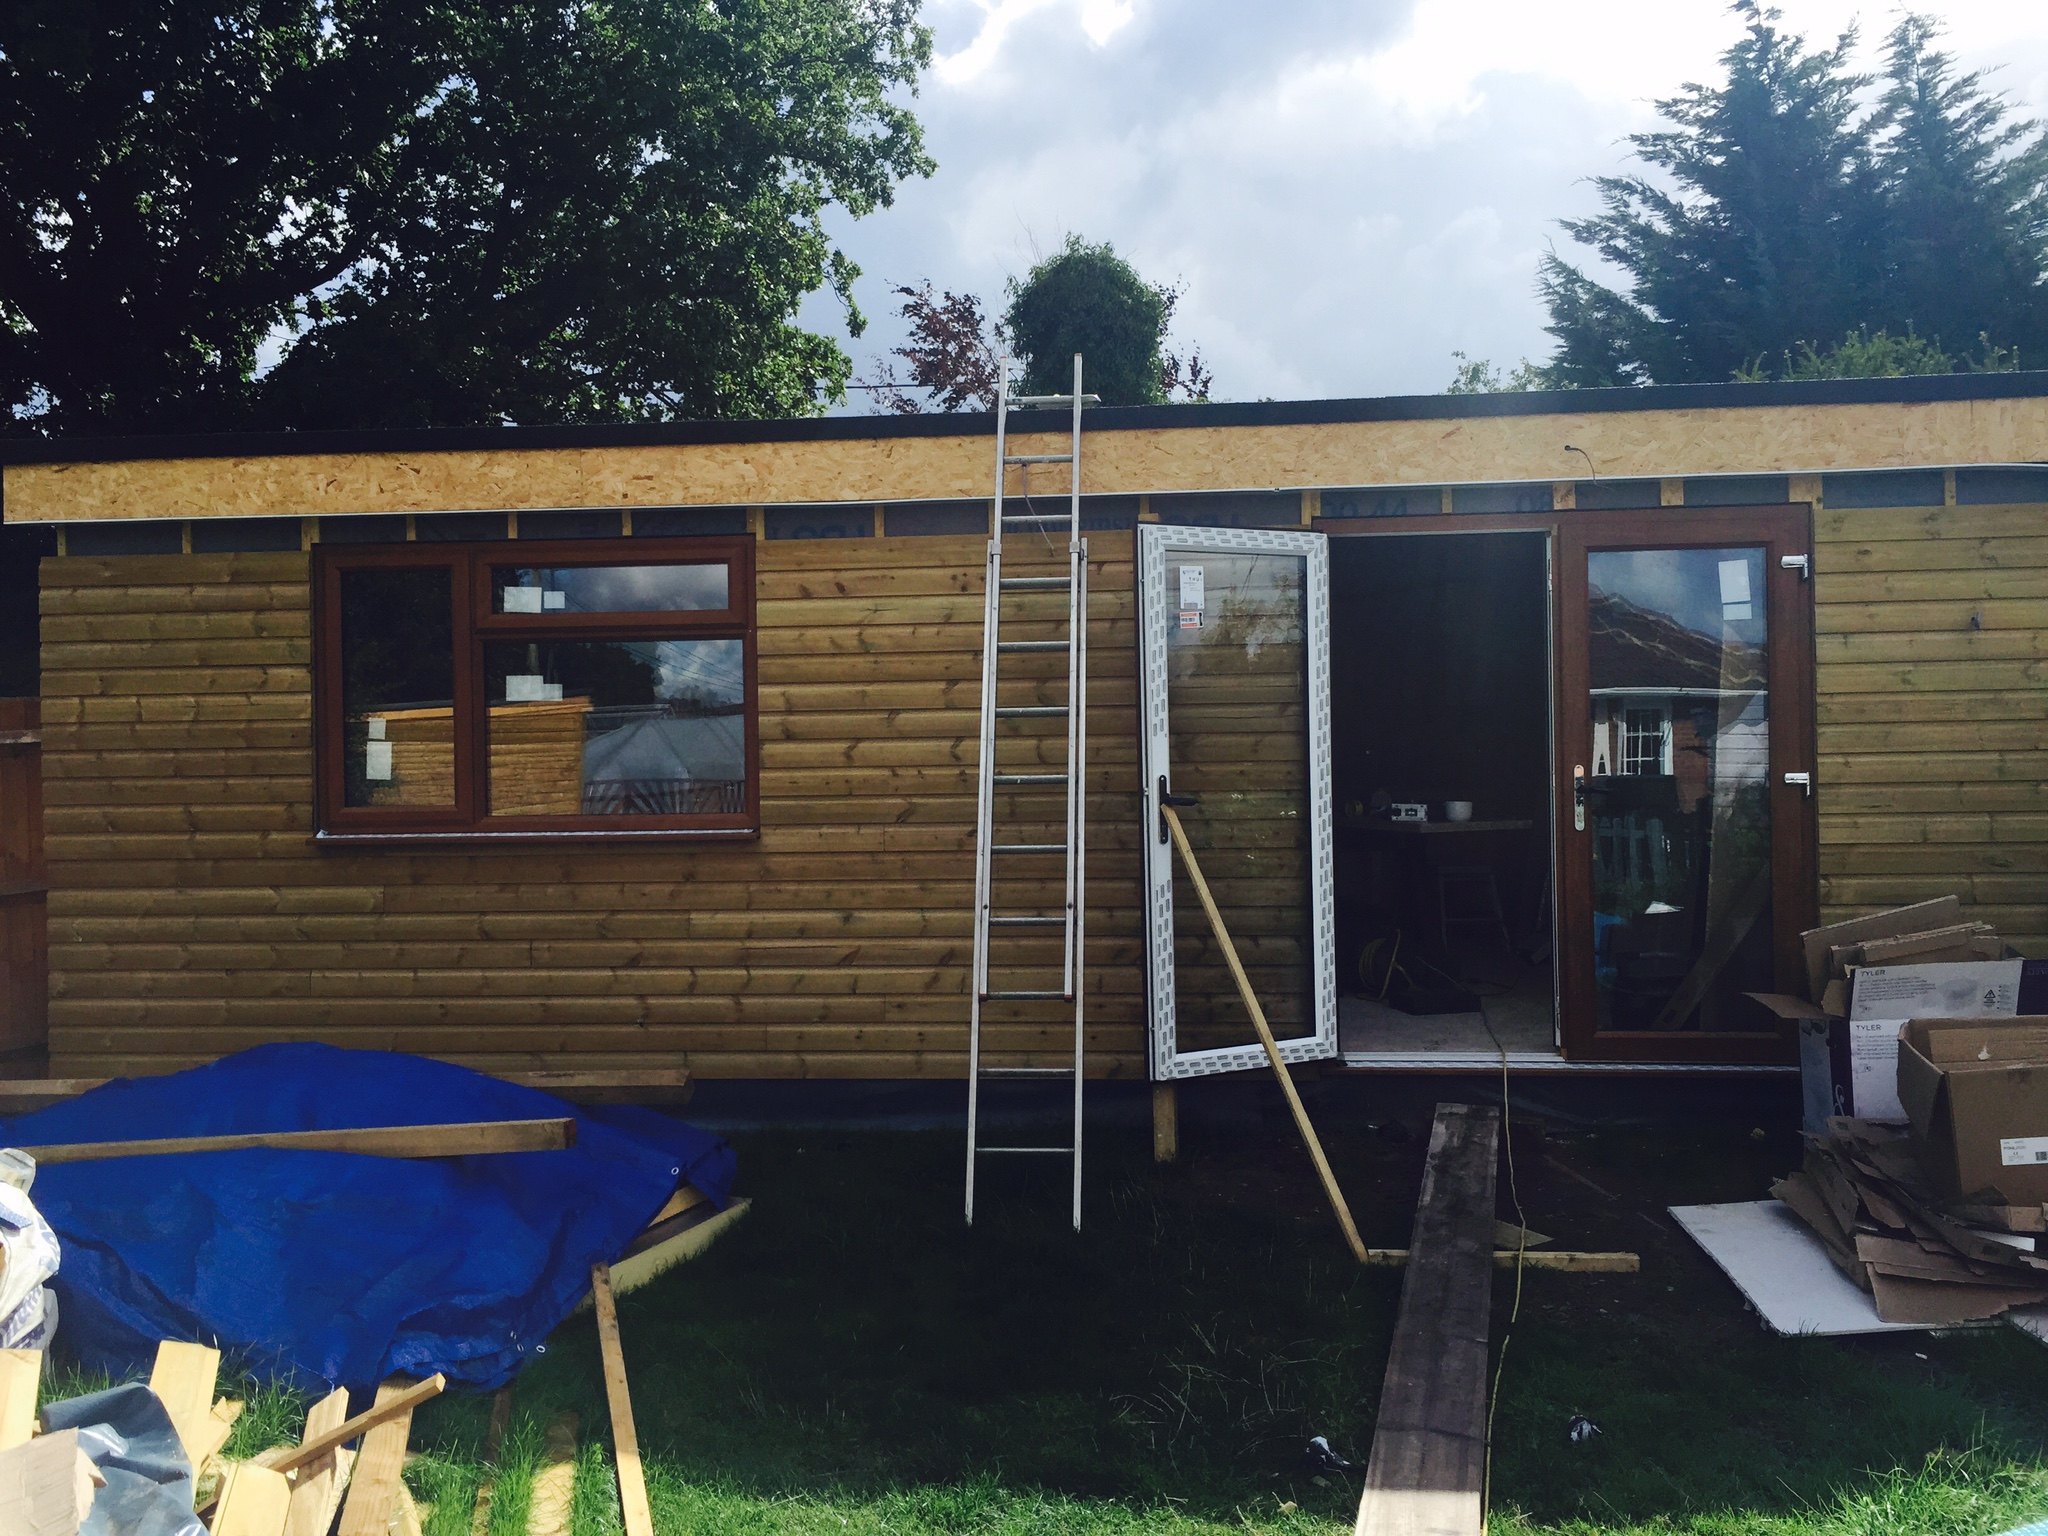 LOG CABINS, OUTHOUSE, OFFICE IN GARDEN, STUDIO FOR ART, PLAY DEN, GARDEN SHED, GARDEN GYM